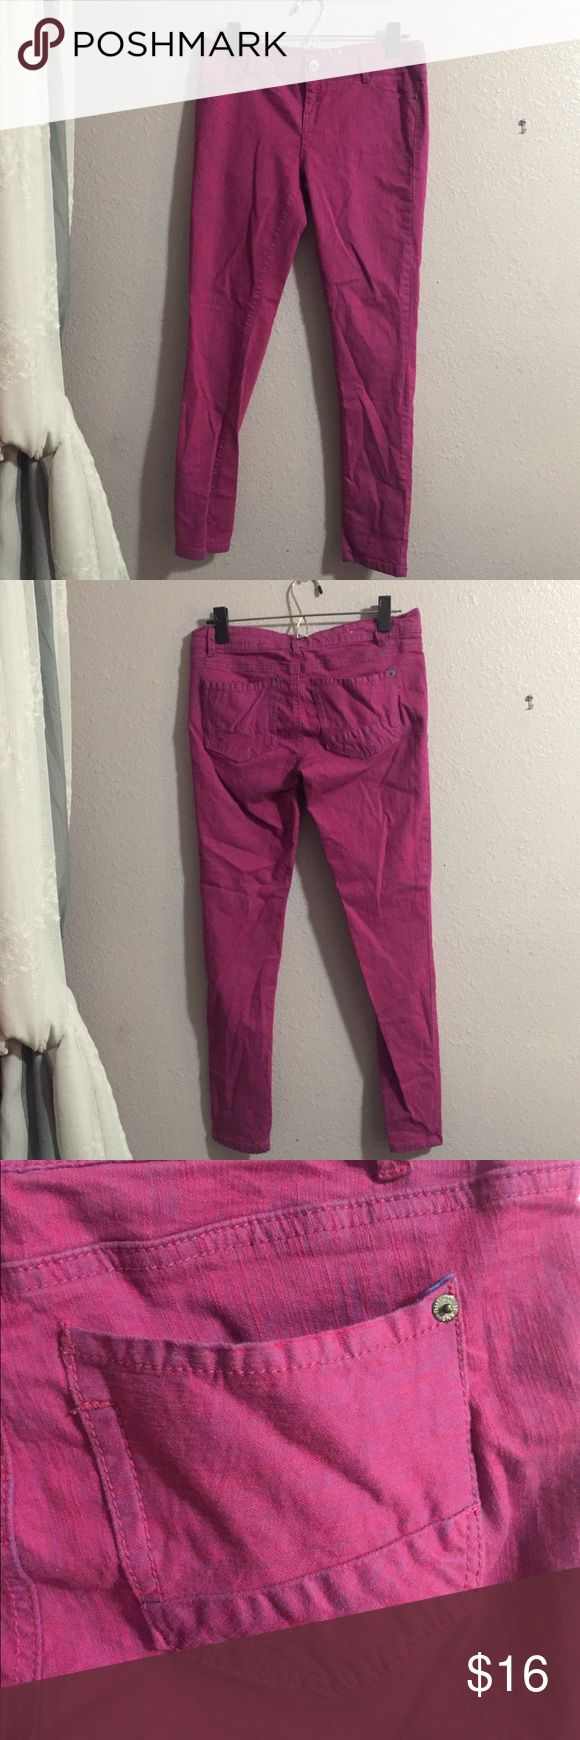 Fuschia Skinny Jeans These jeans look fabulous with a simple, neutral tee or sweater. They will definitely draw eyes to your legs. They are a bit stretchy. Size 5/6  Flaws: A couple loose threats, but otherwise perfect condition   97% Cotton 3% Spandex Rue21 Pants Skinny